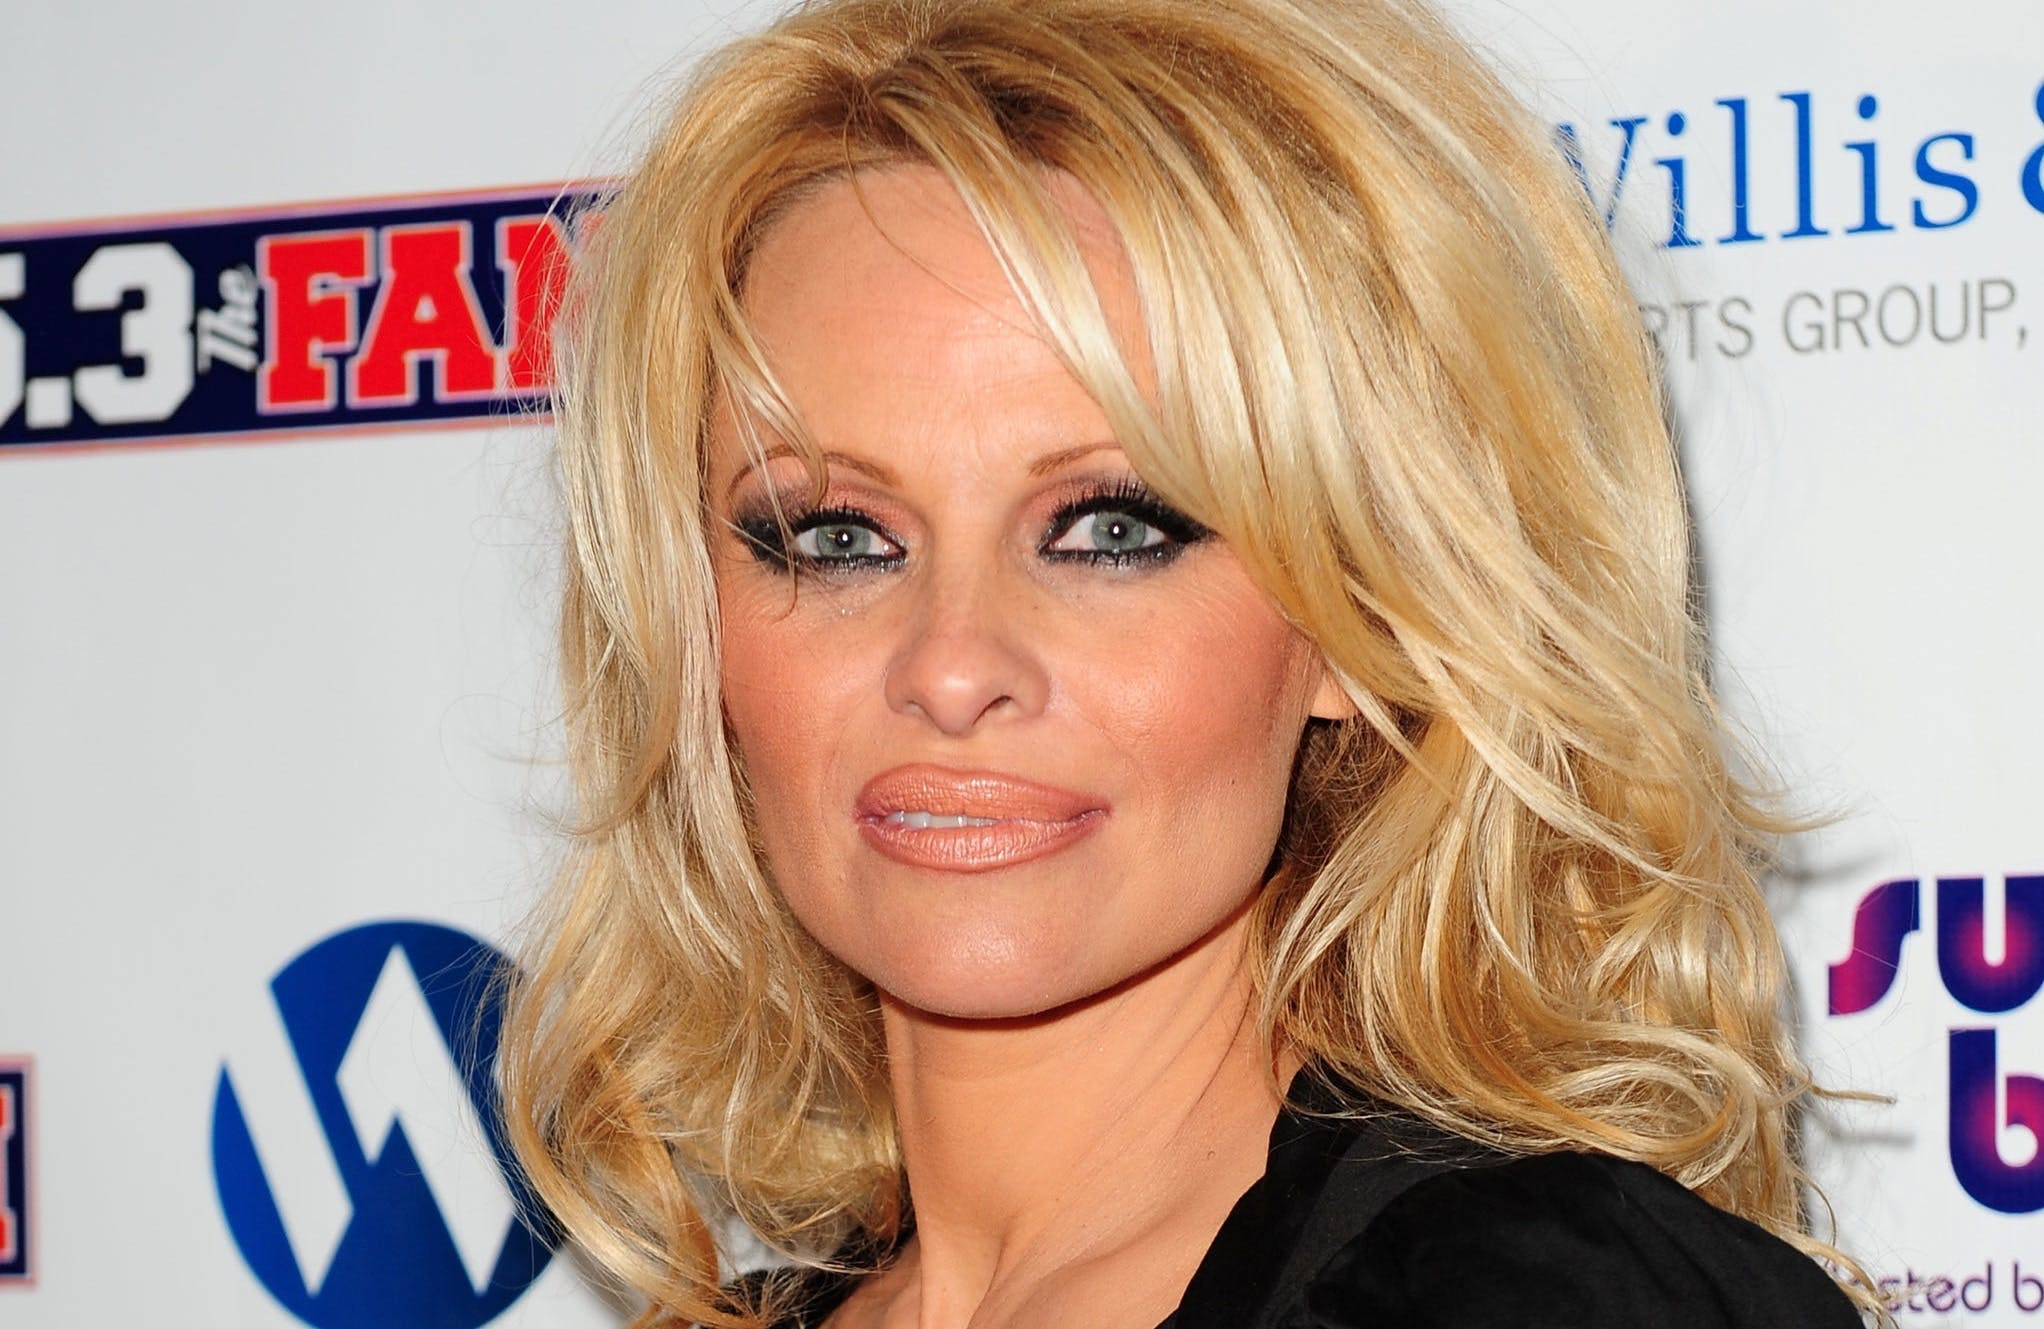 Pamela Anderson Before And After Plastic Surgery Images 1